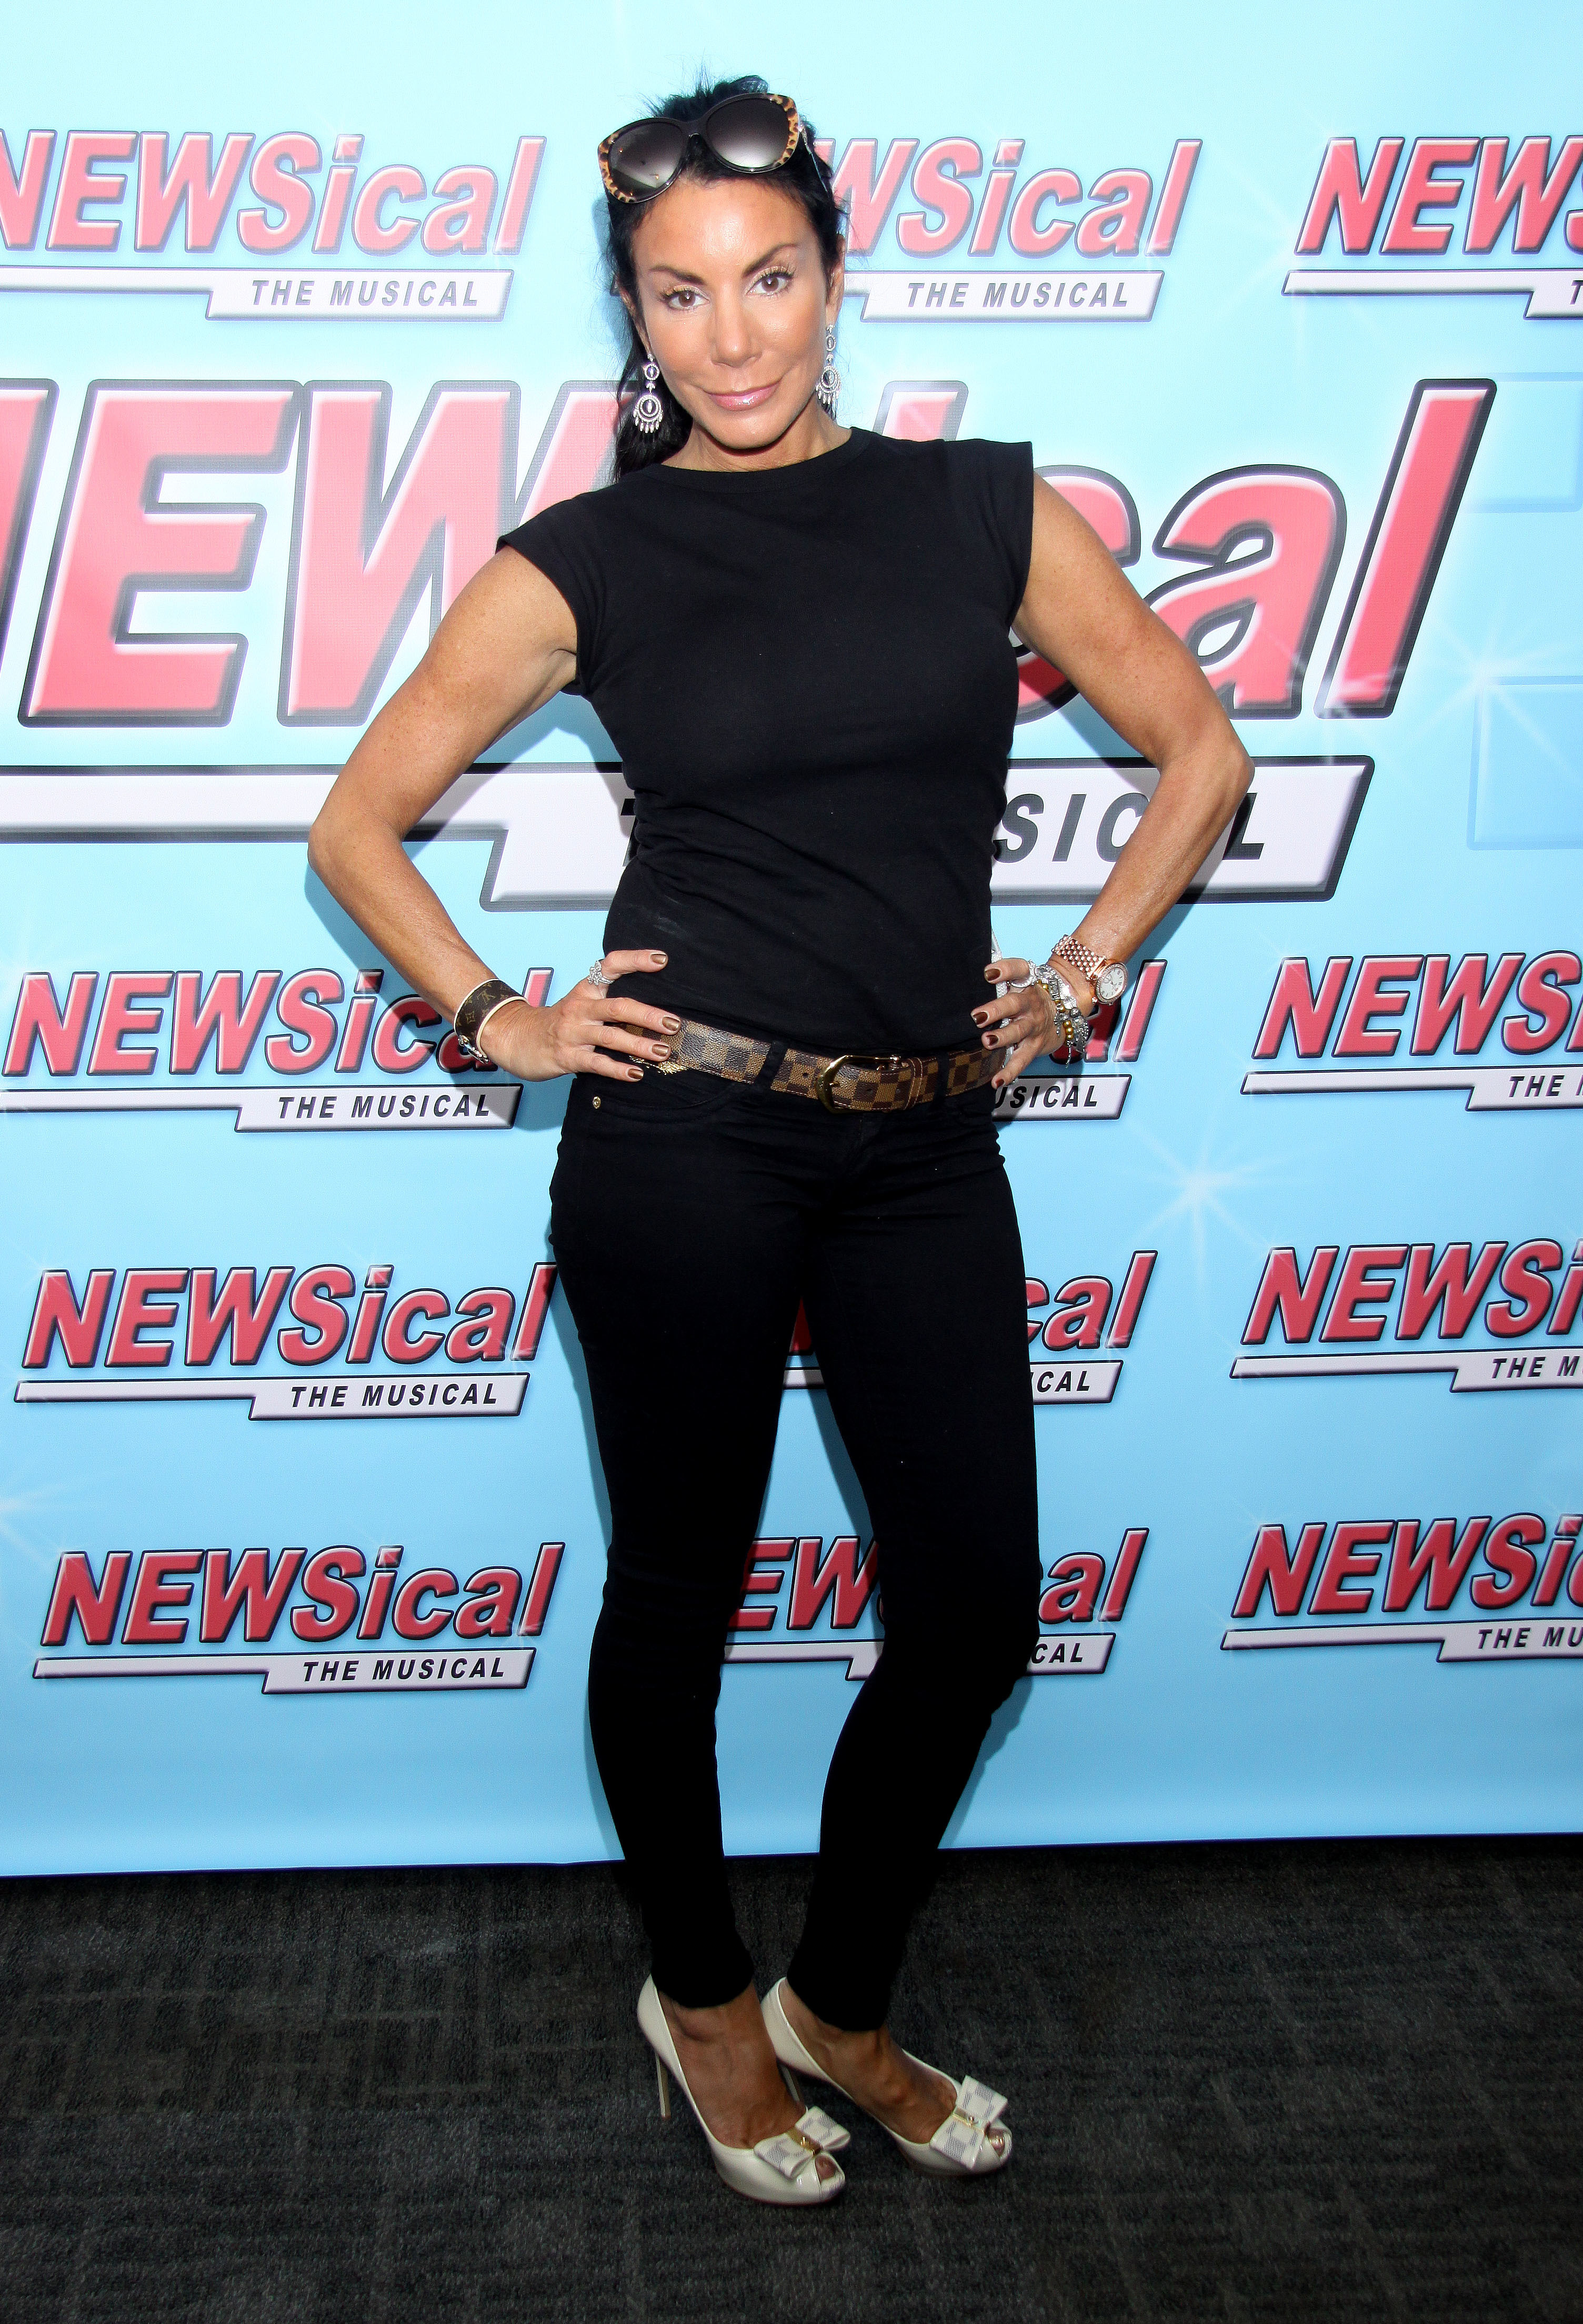 Danielle Staub attends La Toya Jackson's first night in Newsical the Musical at the Kirk Theatre in New York City on Sept. 13, 2013.